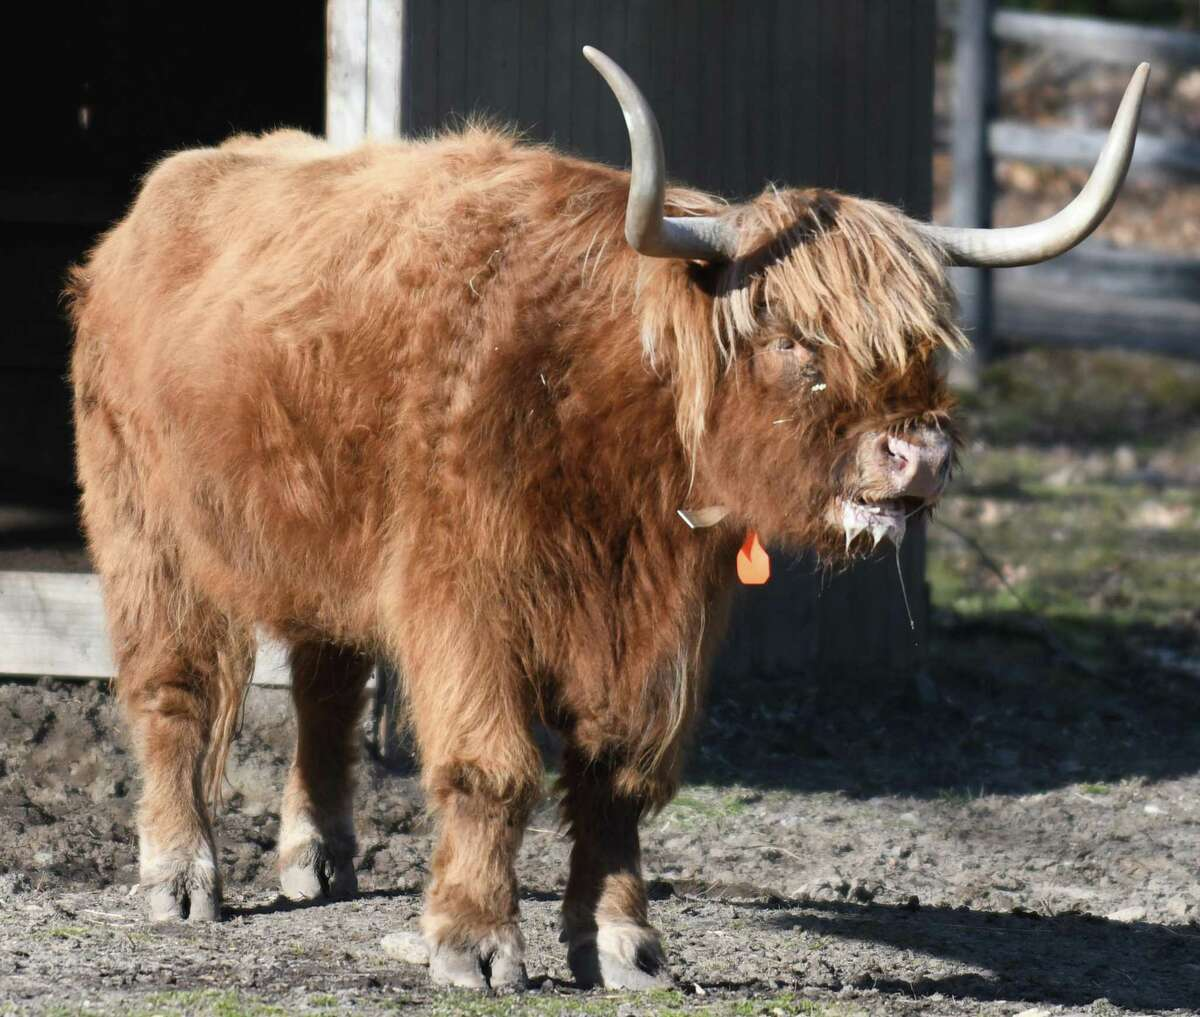 A highland cow slobbers outside its stable at the Stamford Museum & Nature Center in Stamford, Conn. Sunday, Jan. 10, 2021.